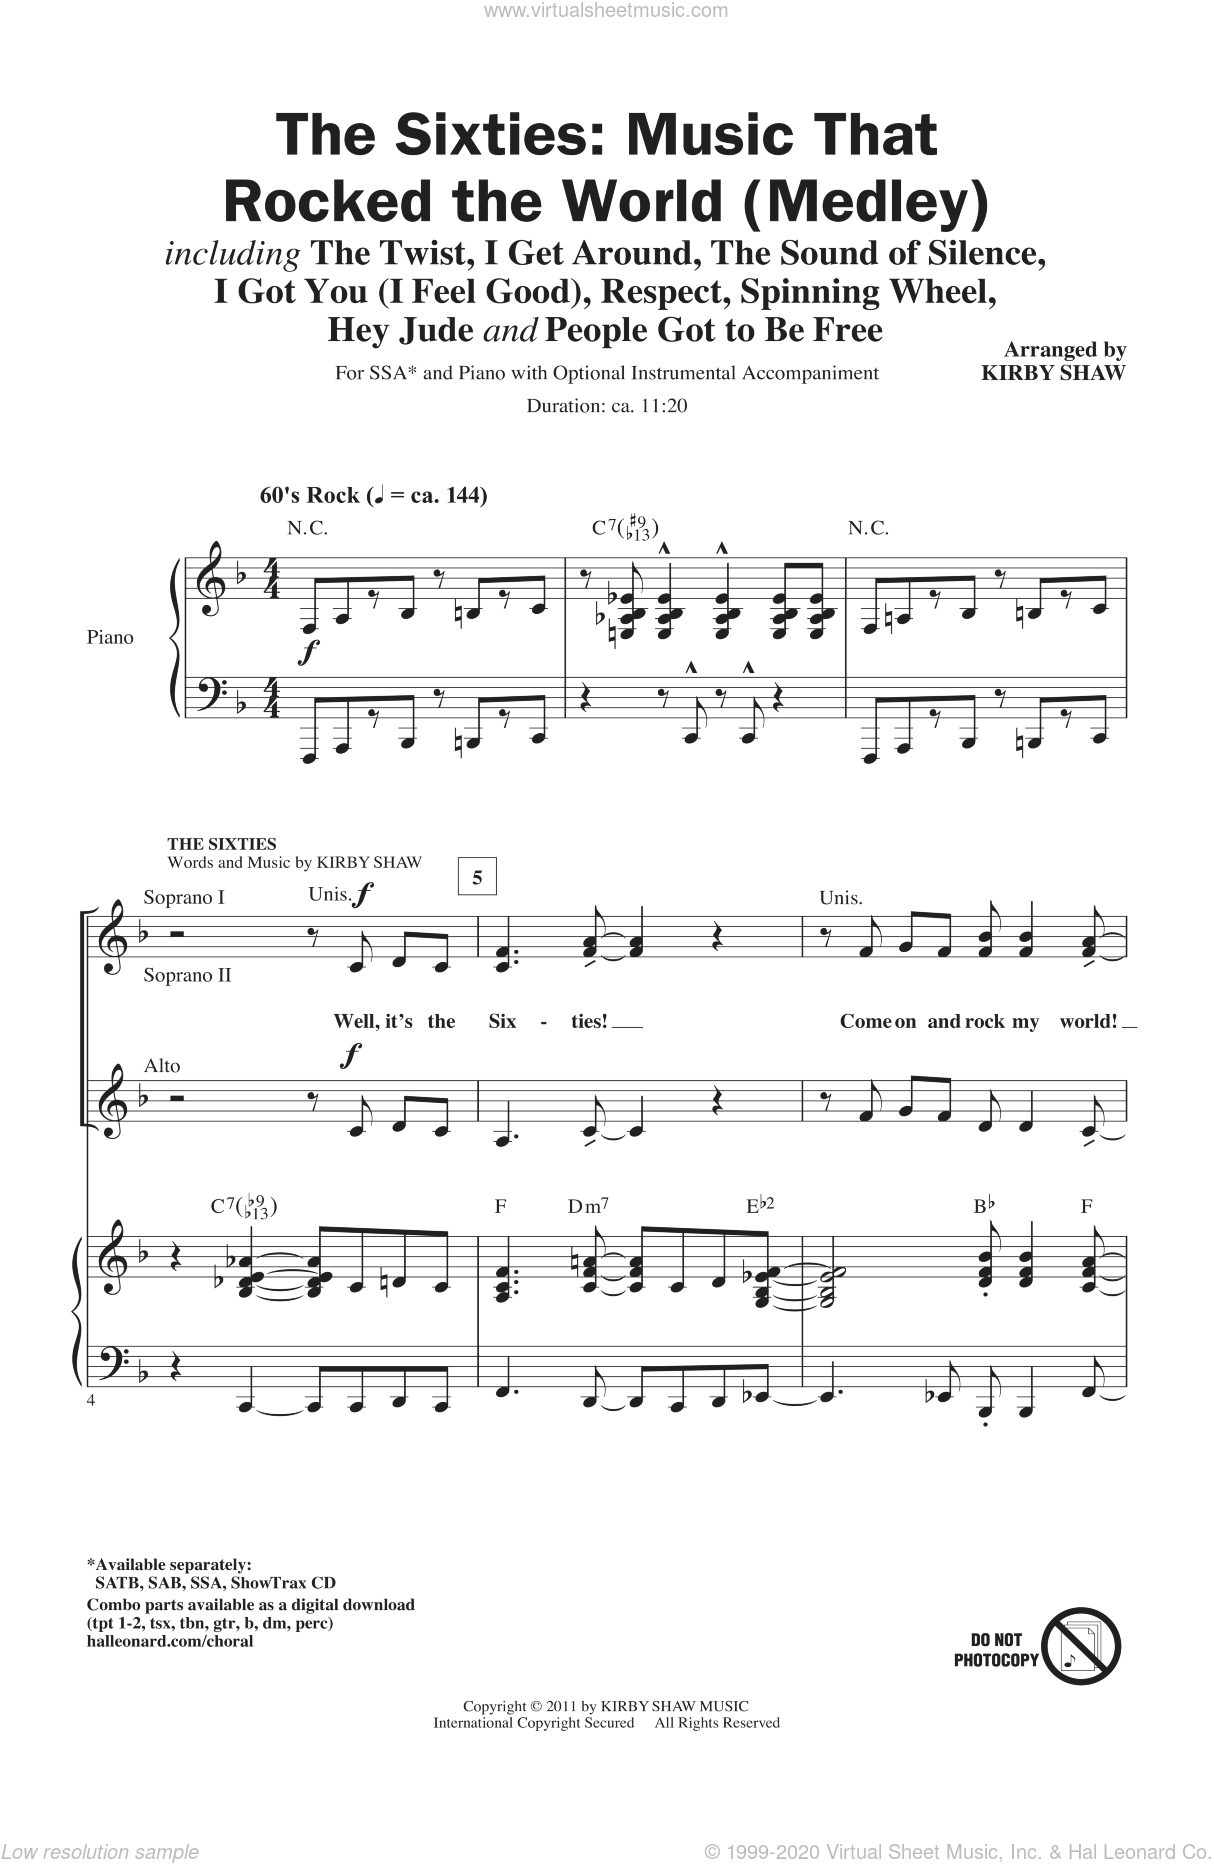 The Sixties: Music That Rocked The World sheet music for choir and piano (SSA) by Kirby Shaw. Score Image Preview.